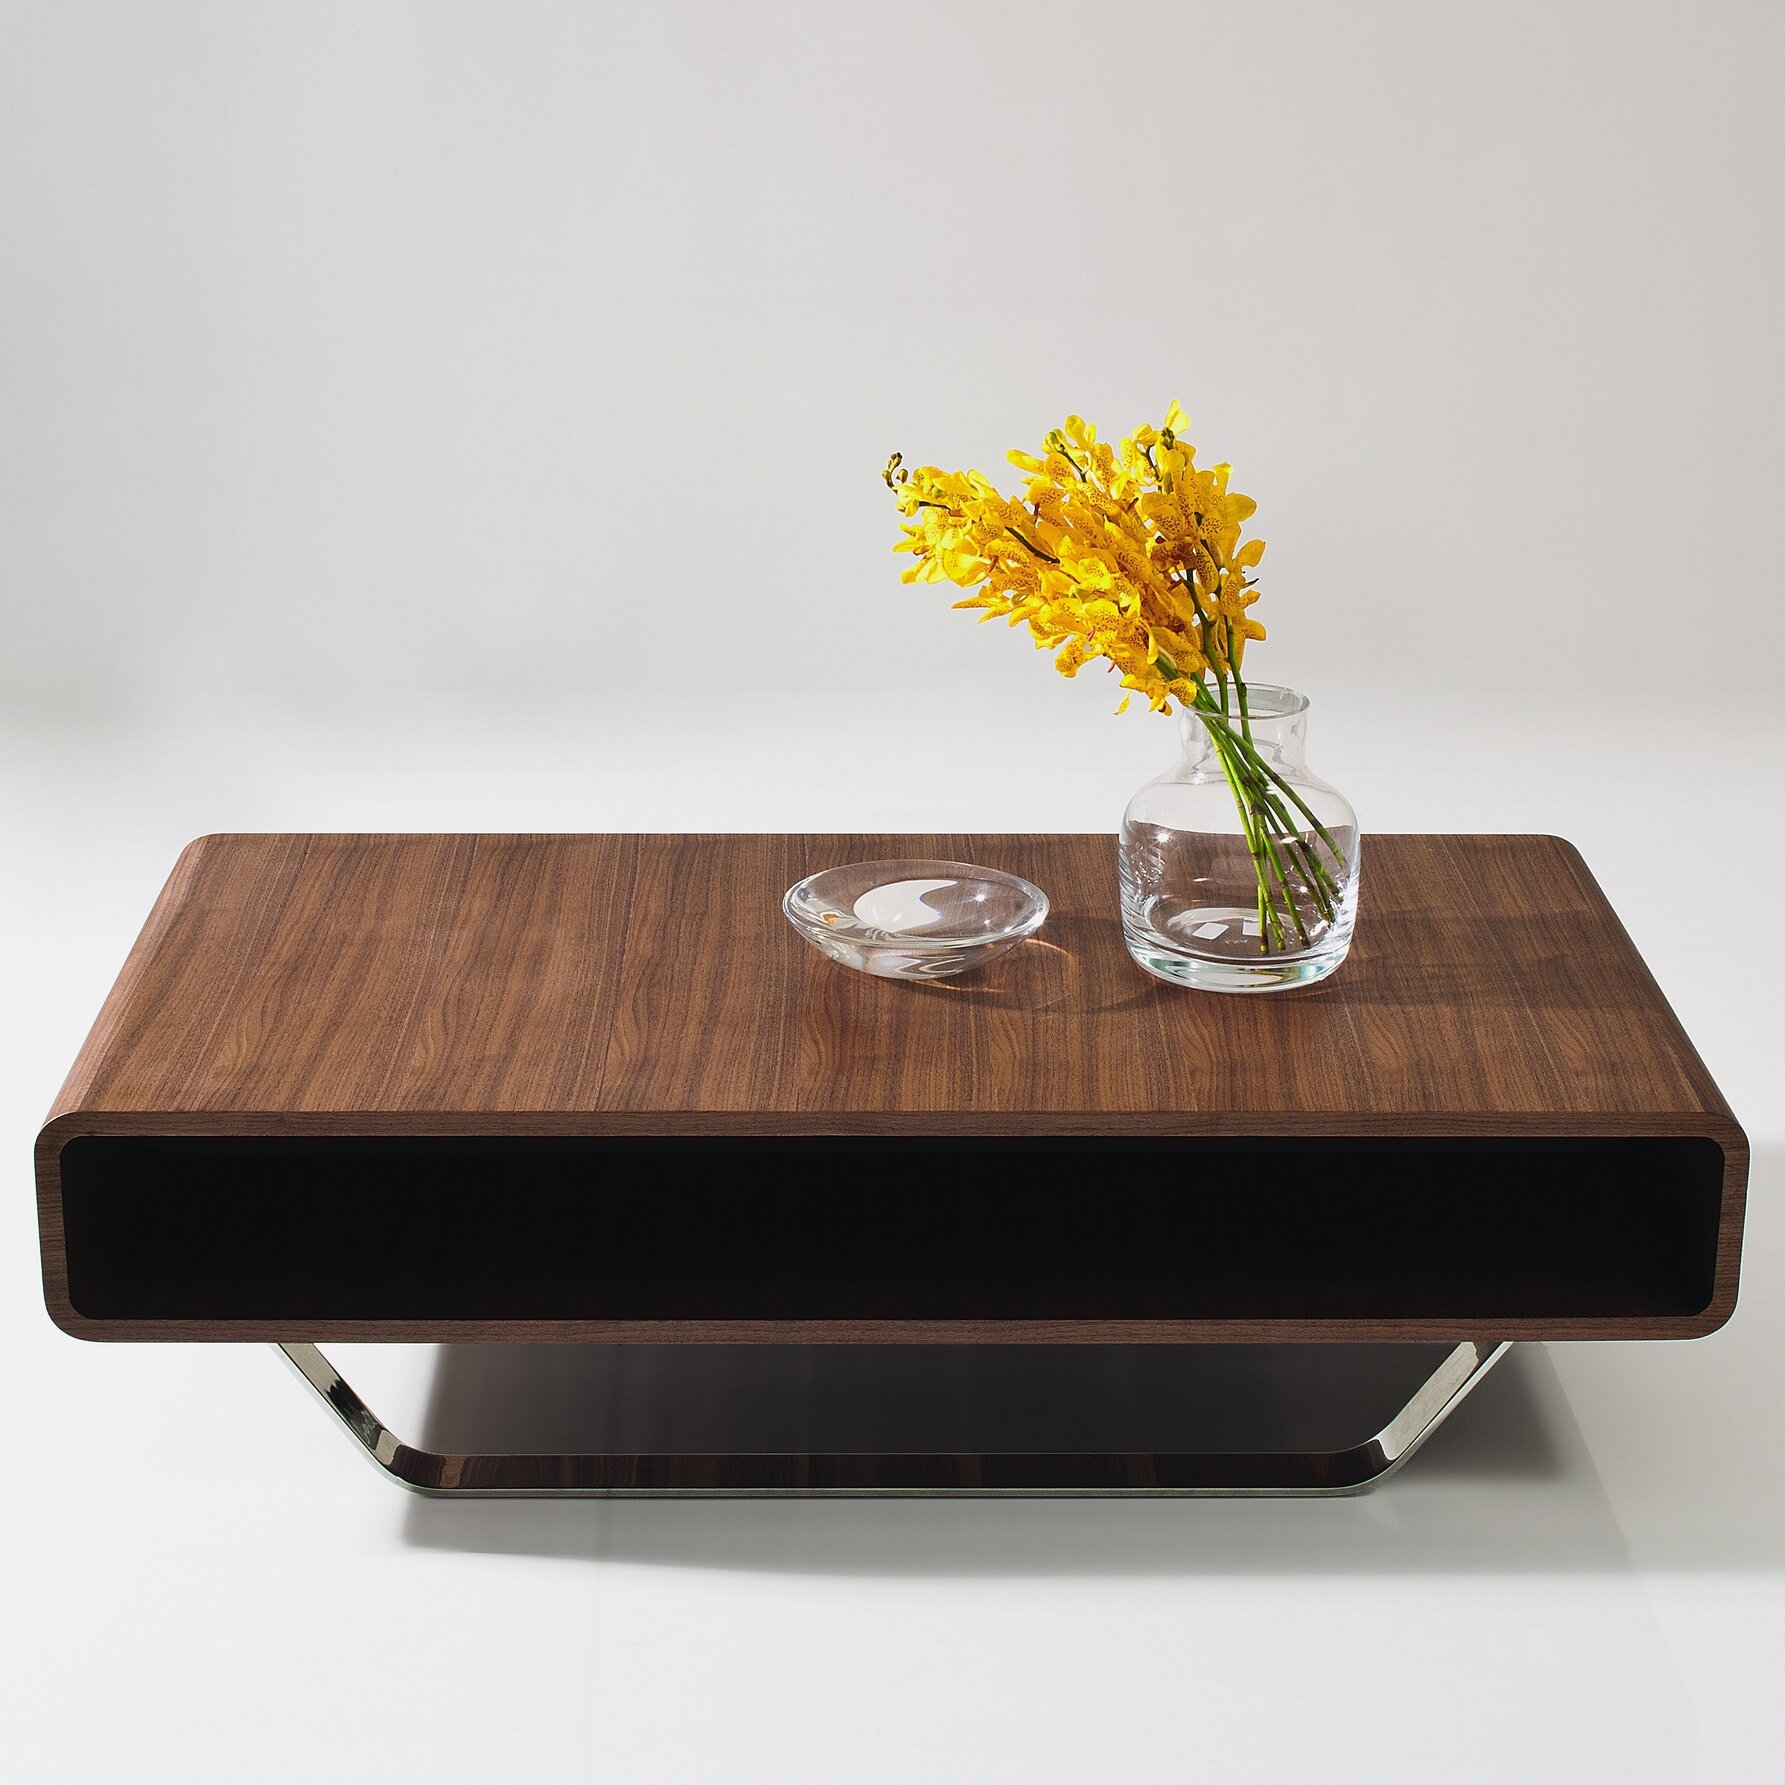 jm furniture modern coffee table reviews wayfair With wayfair modern coffee table